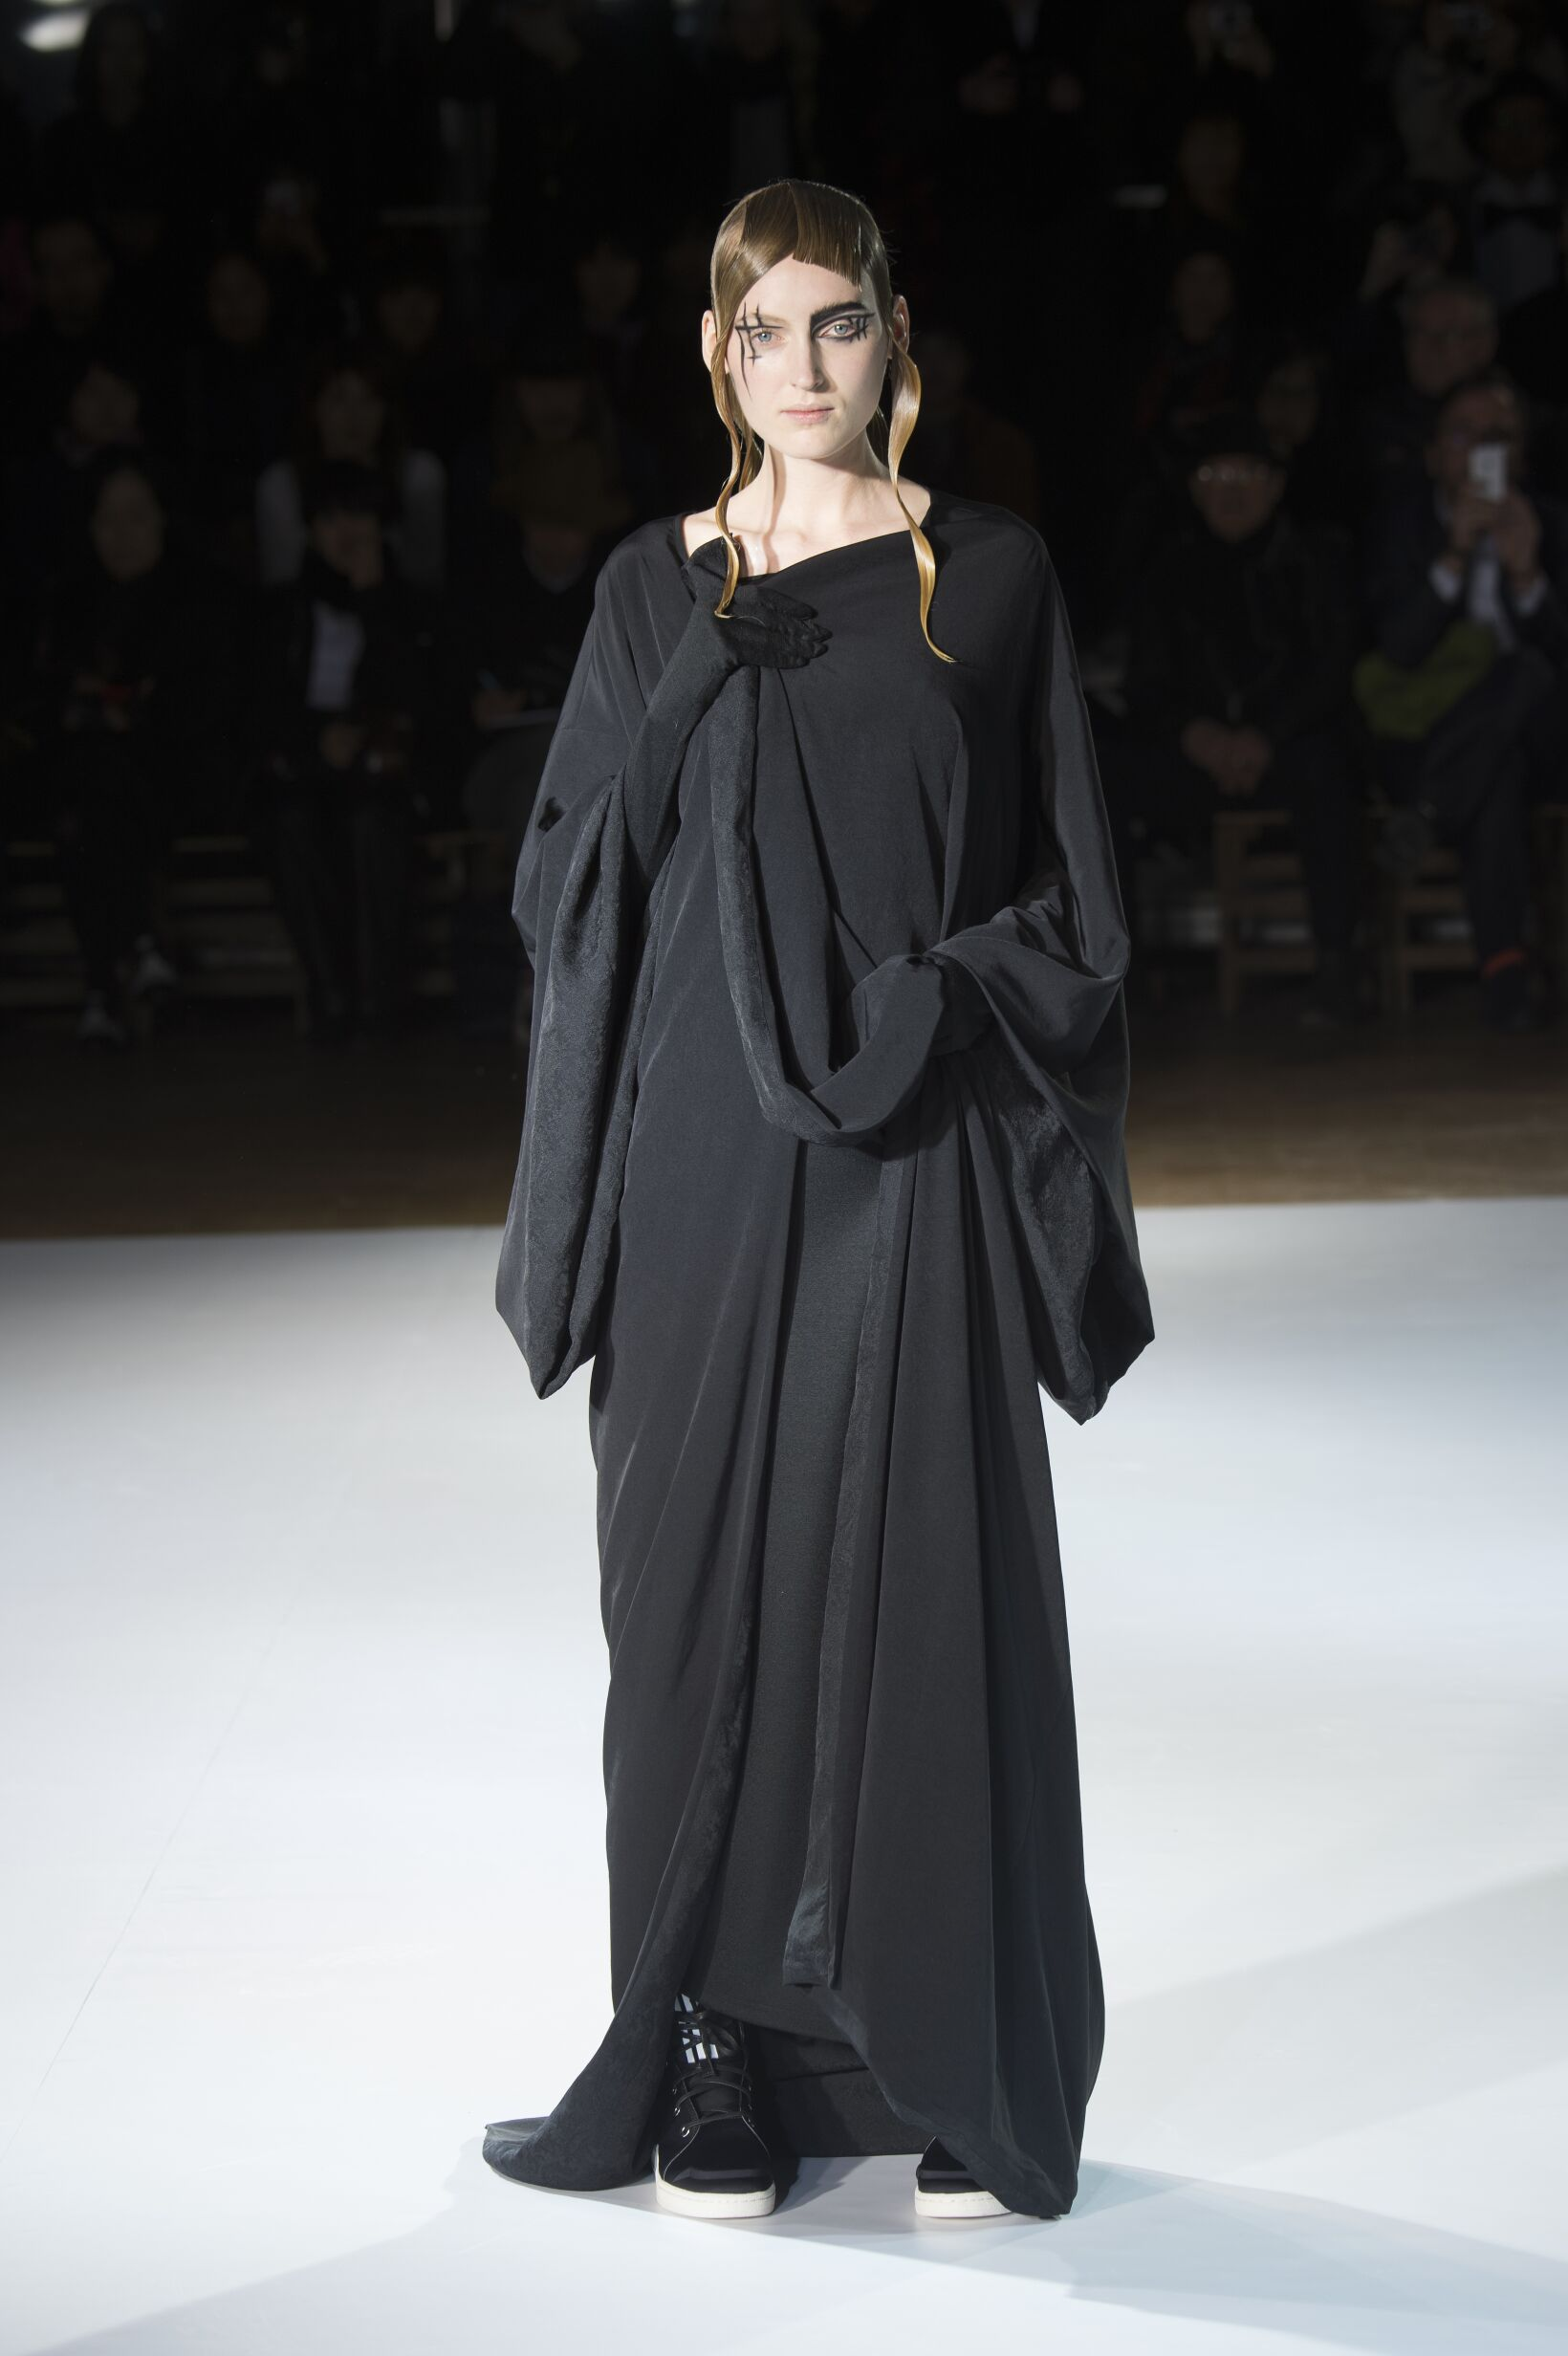 2016 Fall Fashion Woman Yohji Yamamoto Collection